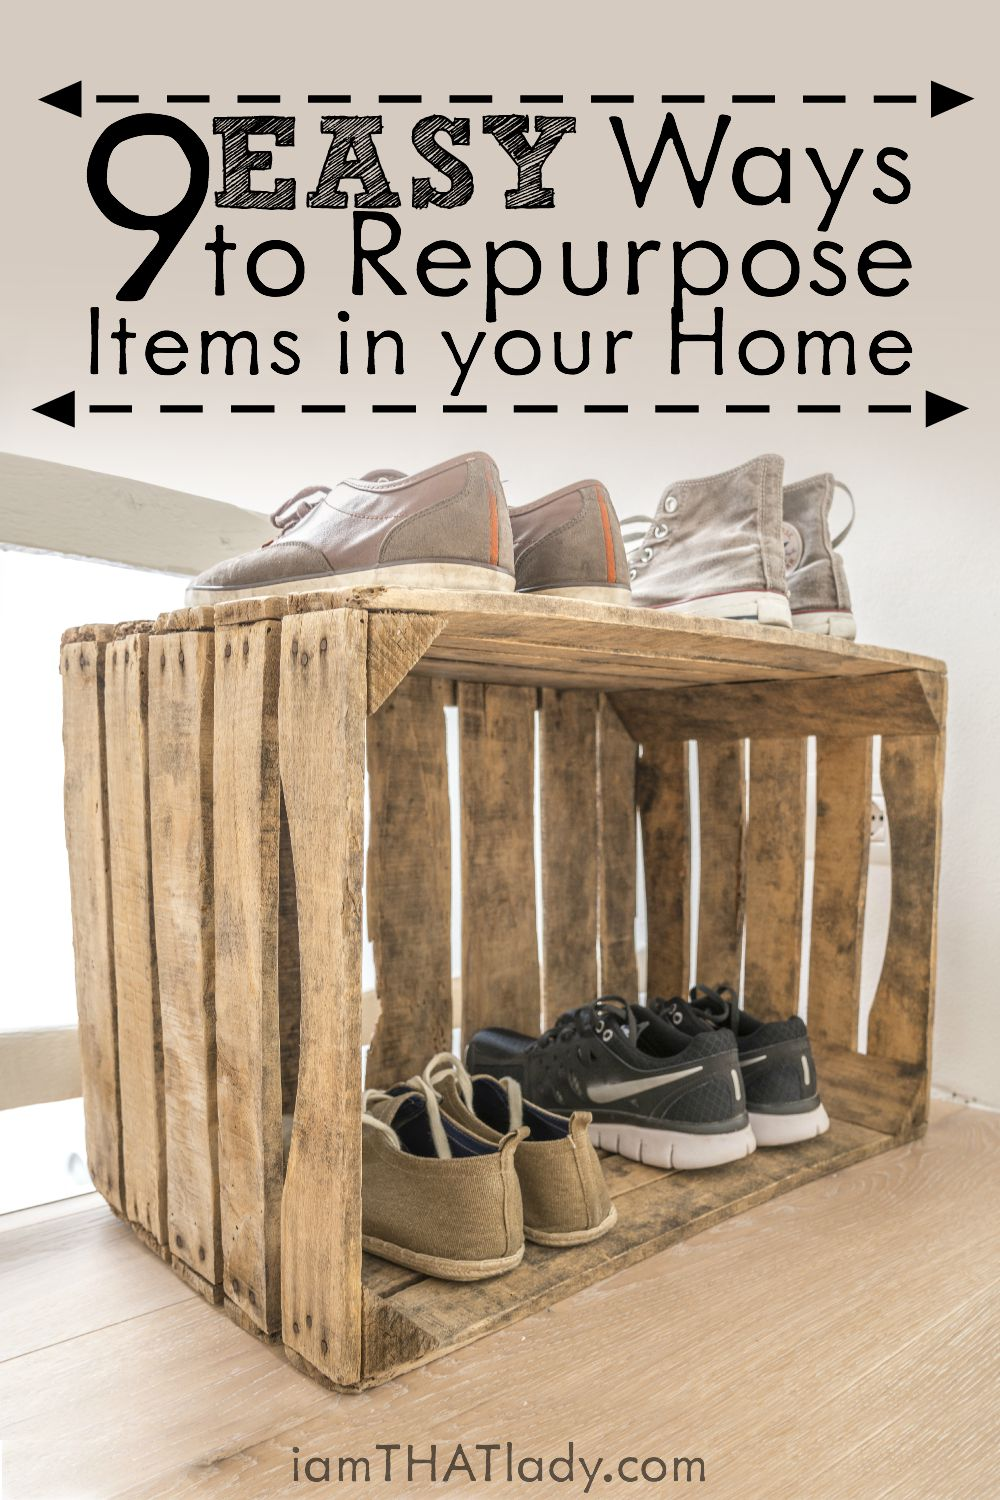 Looking for some creative ways to save money How about repurposing items in your own home! Here are 9 ways.